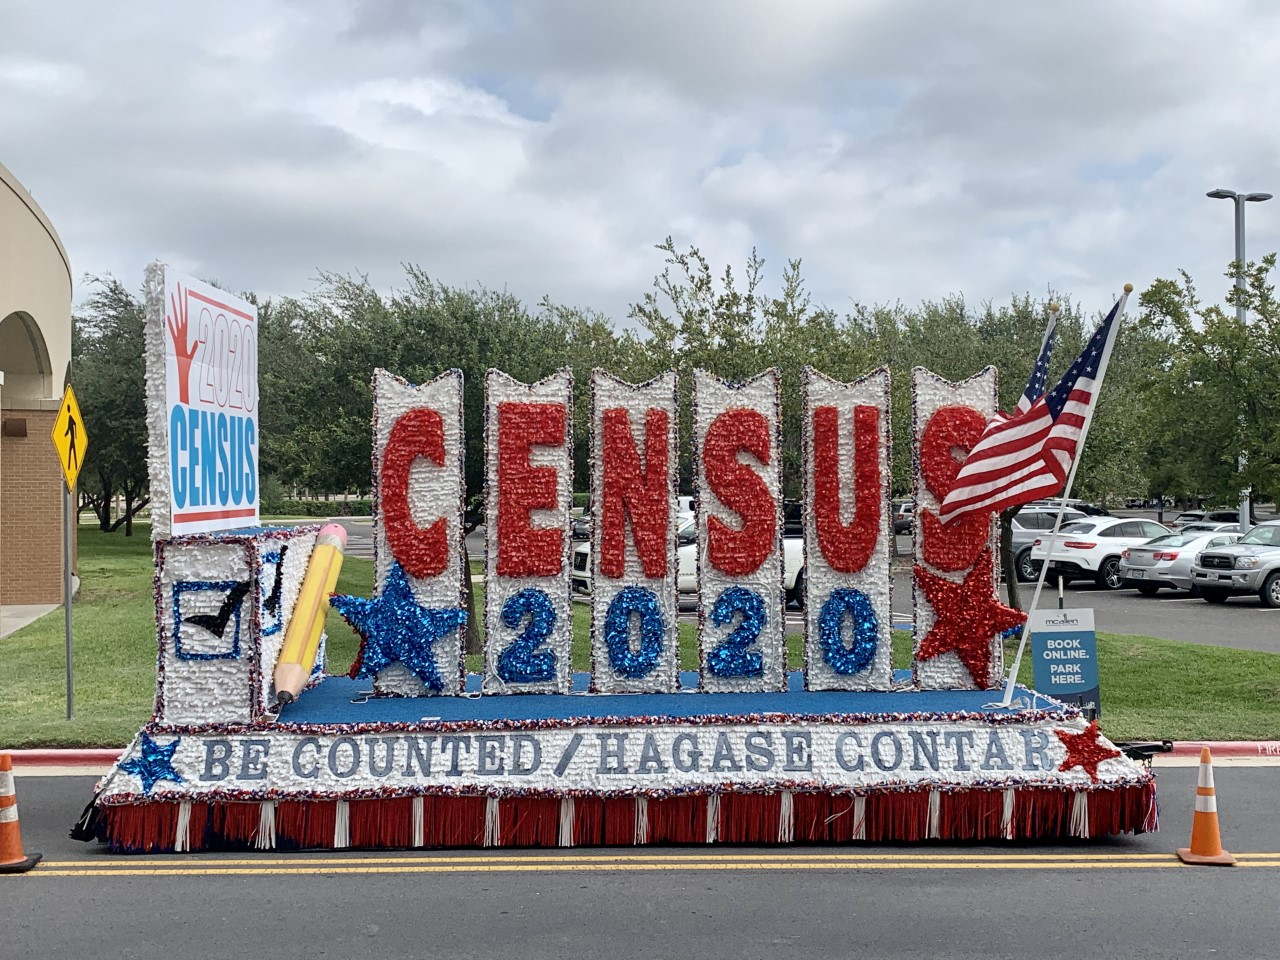 Brig Niagara Halloween 2020 Border leaders hail judge's ruling to extend census count through